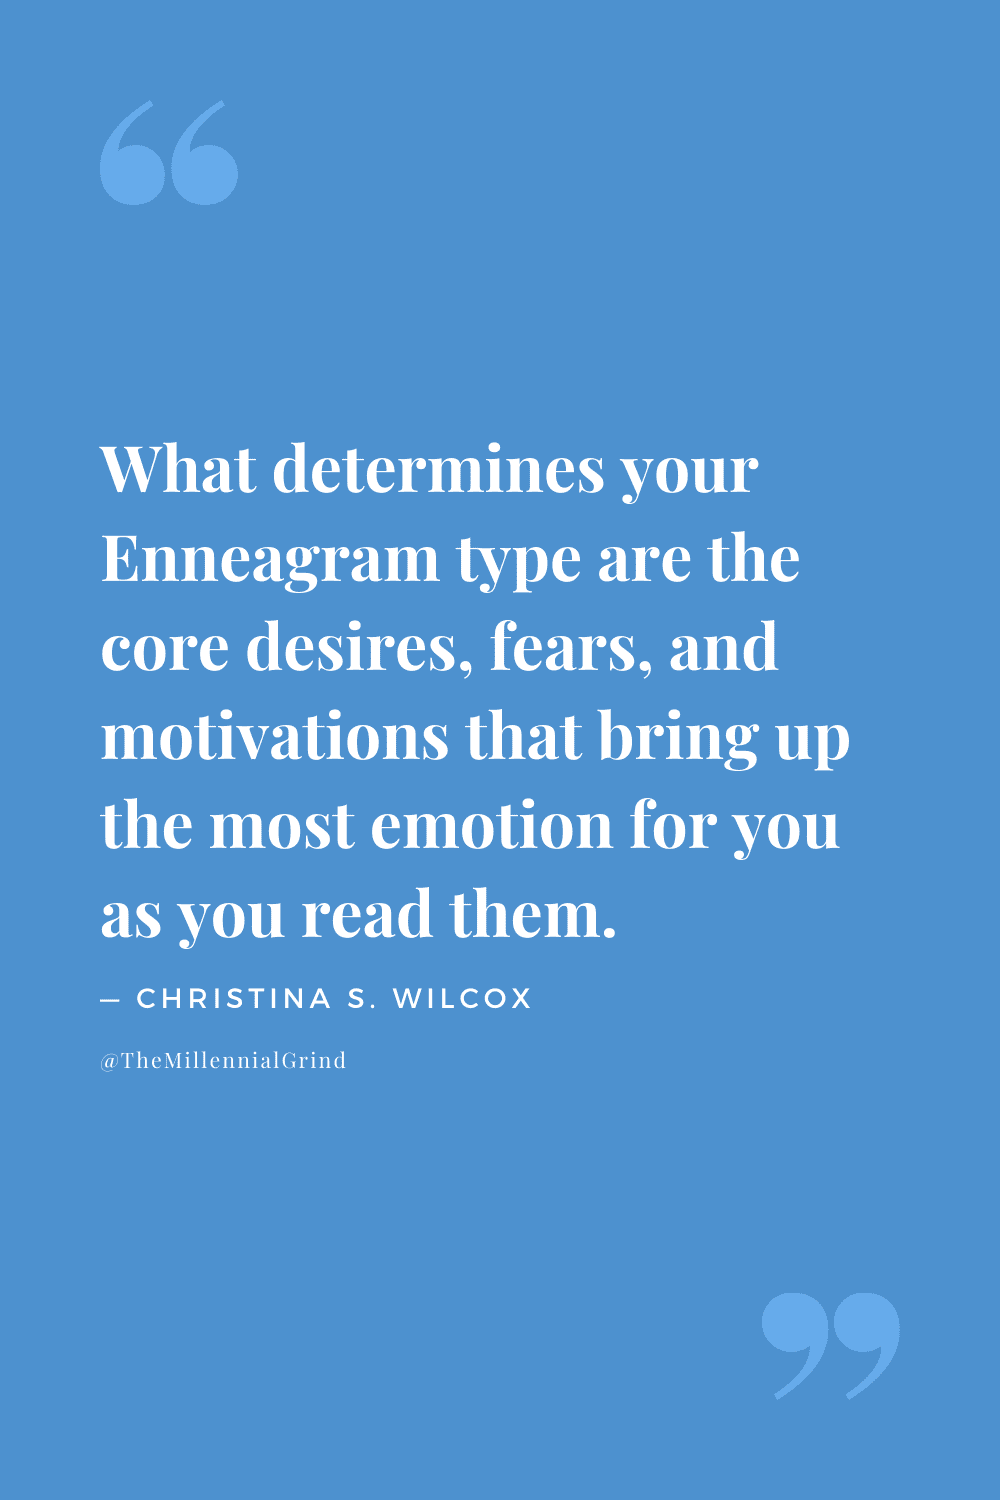 Quotes From Take Care of Your Type by Christina S. Wilcox